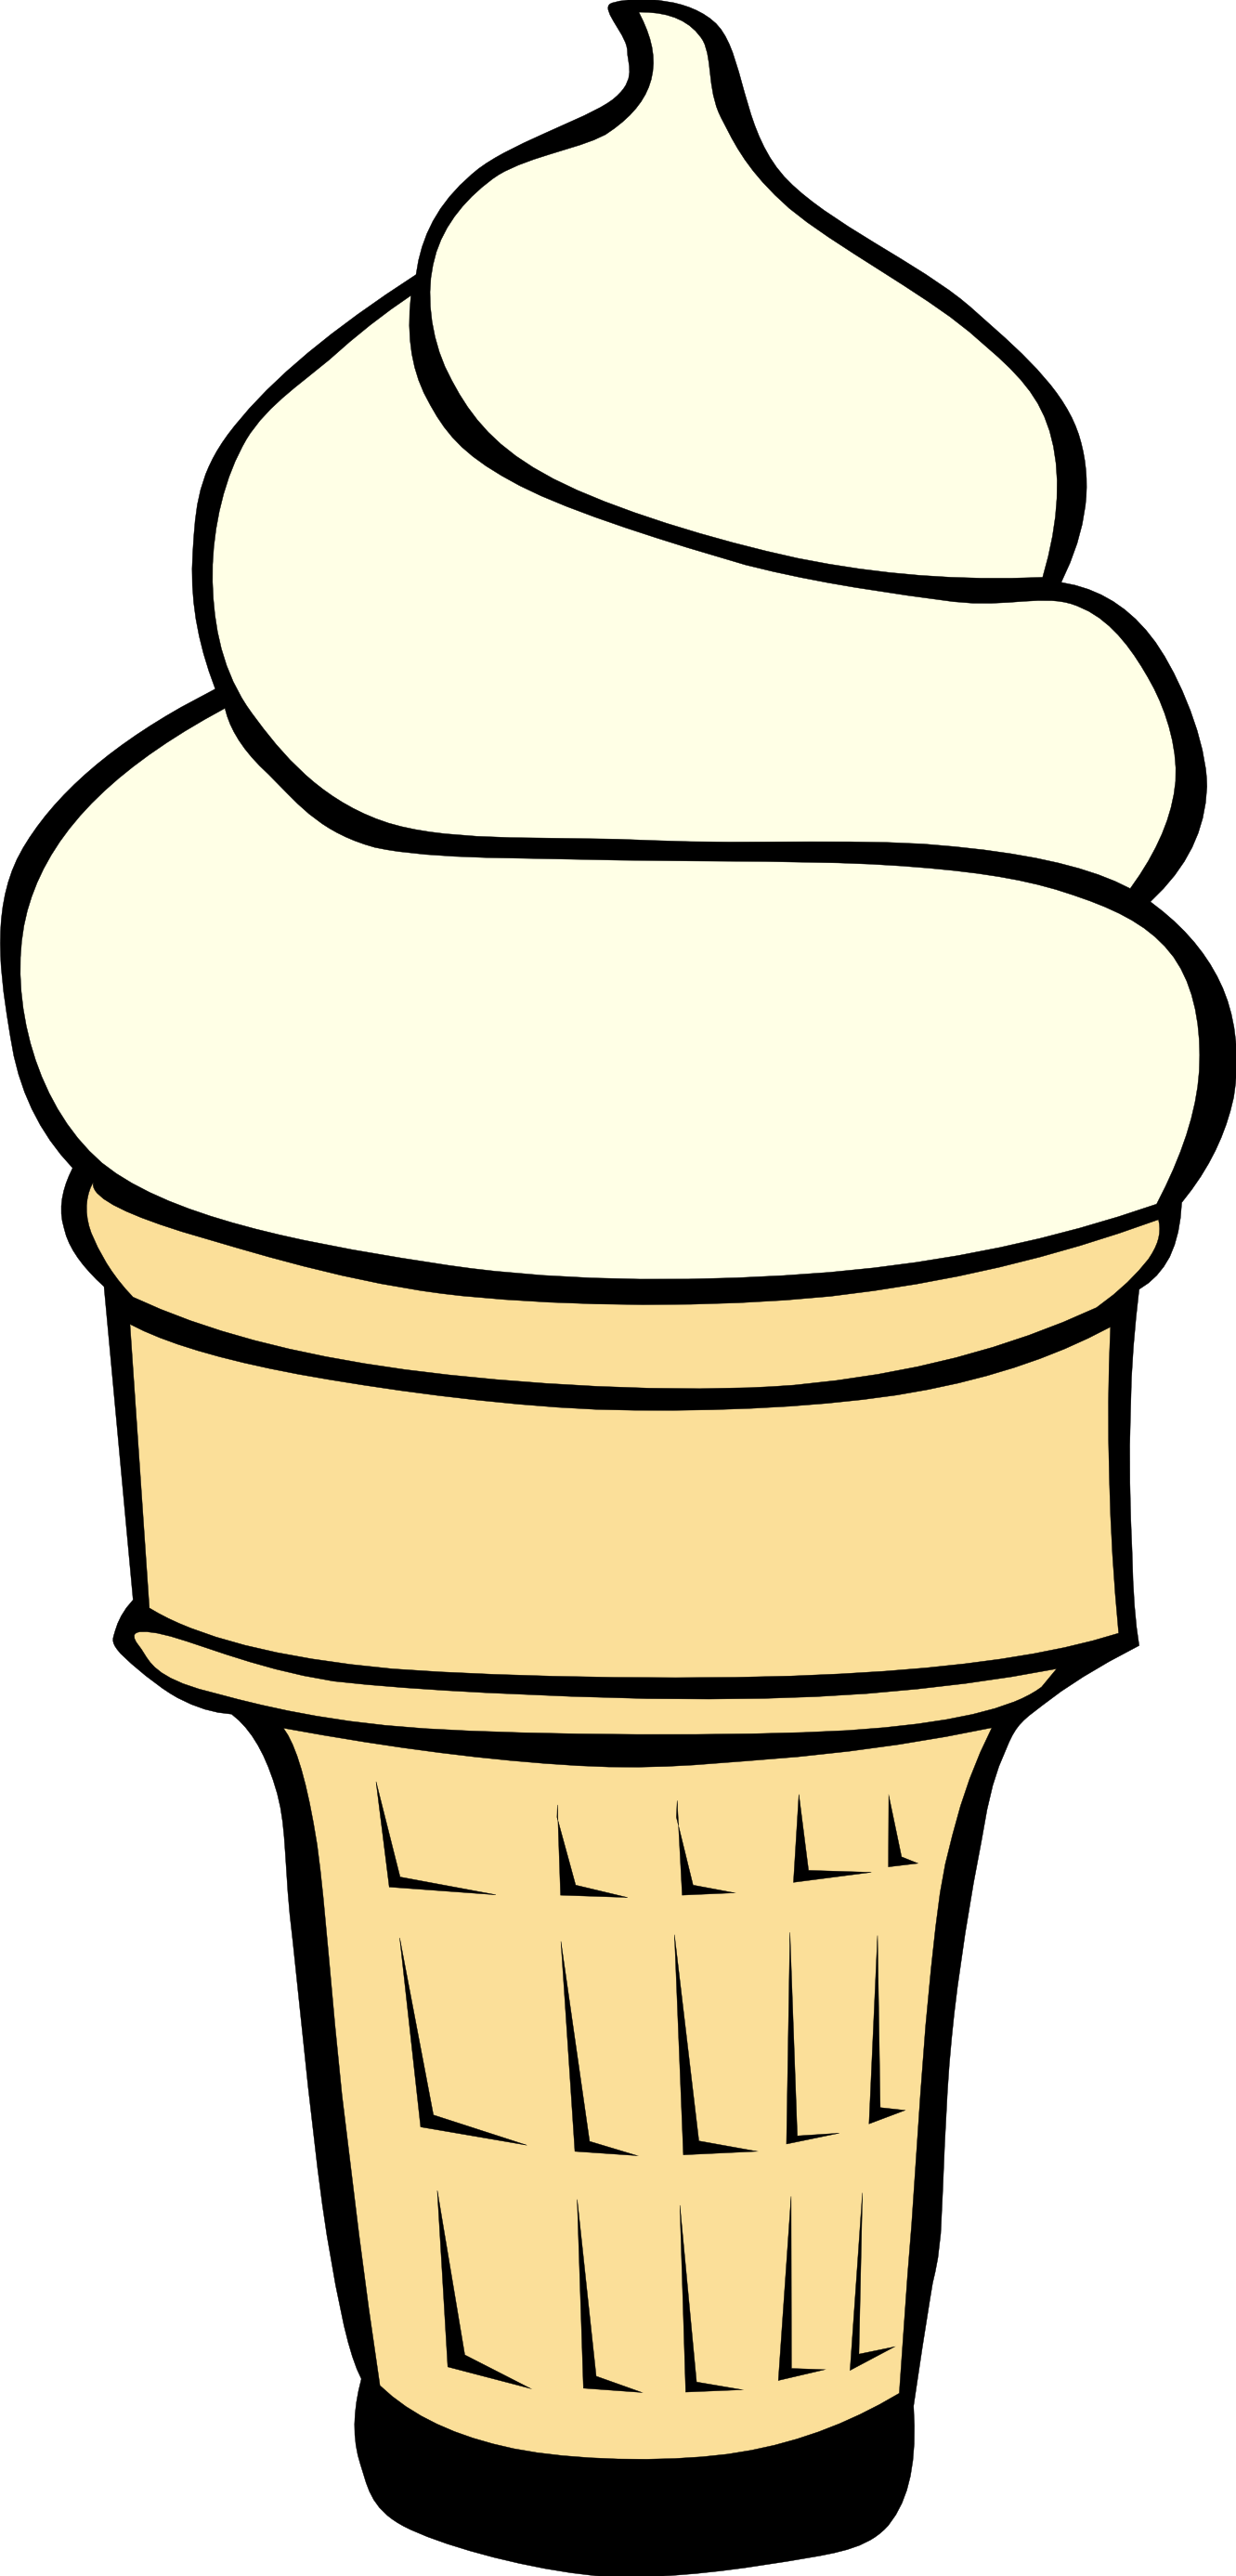 Ice cream cone ice cream animated clipart clipart kid 2.